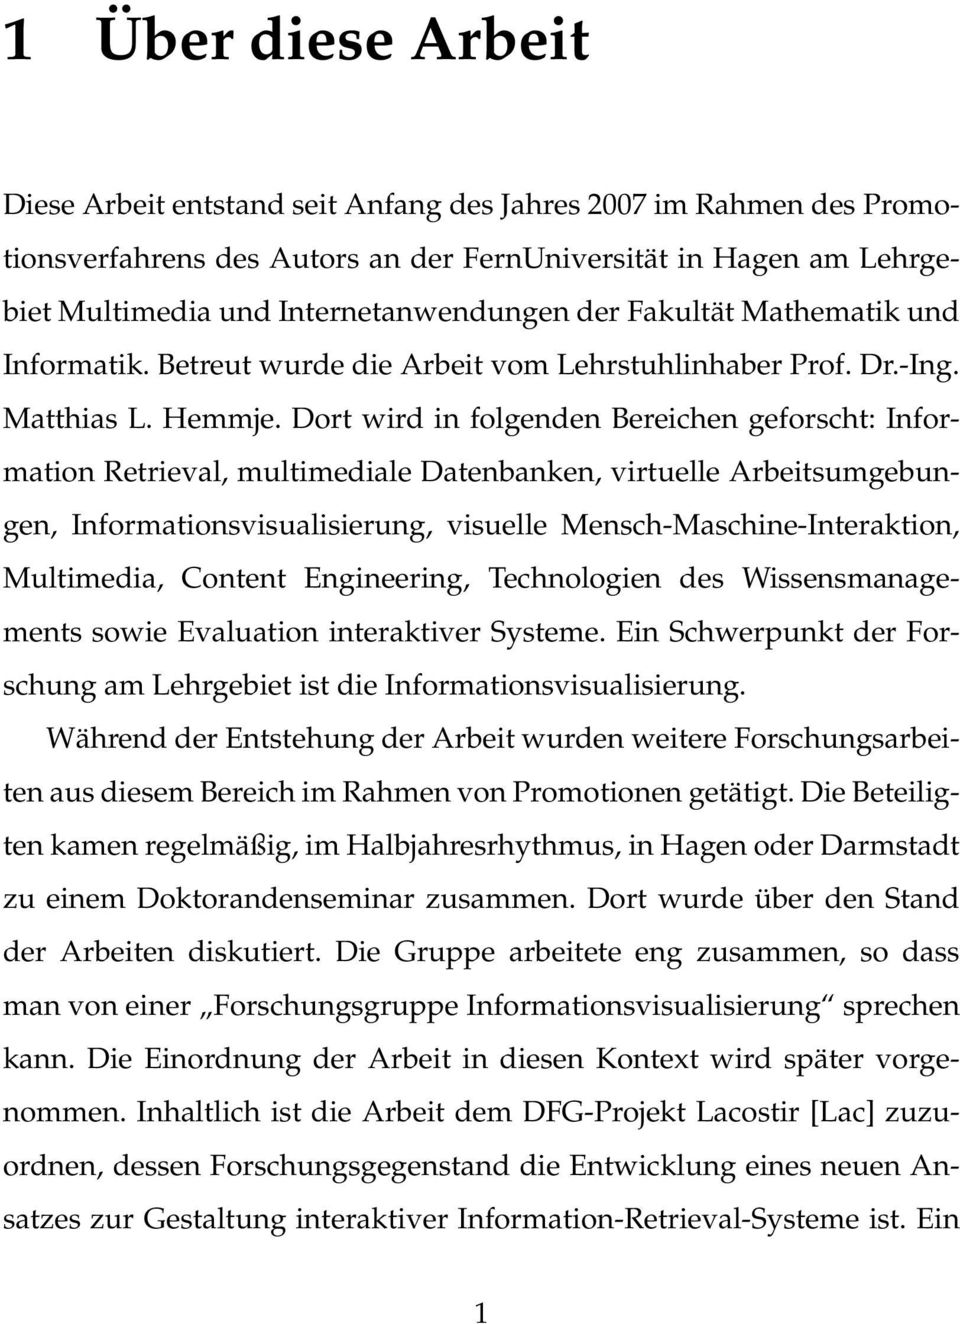 Dort wird in folgenden Bereichen geforscht: Information Retrieval, multimediale Datenbanken, virtuelle Arbeitsumgebungen, Informationsvisualisierung, visuelle Mensch-Maschine-Interaktion, Multimedia,